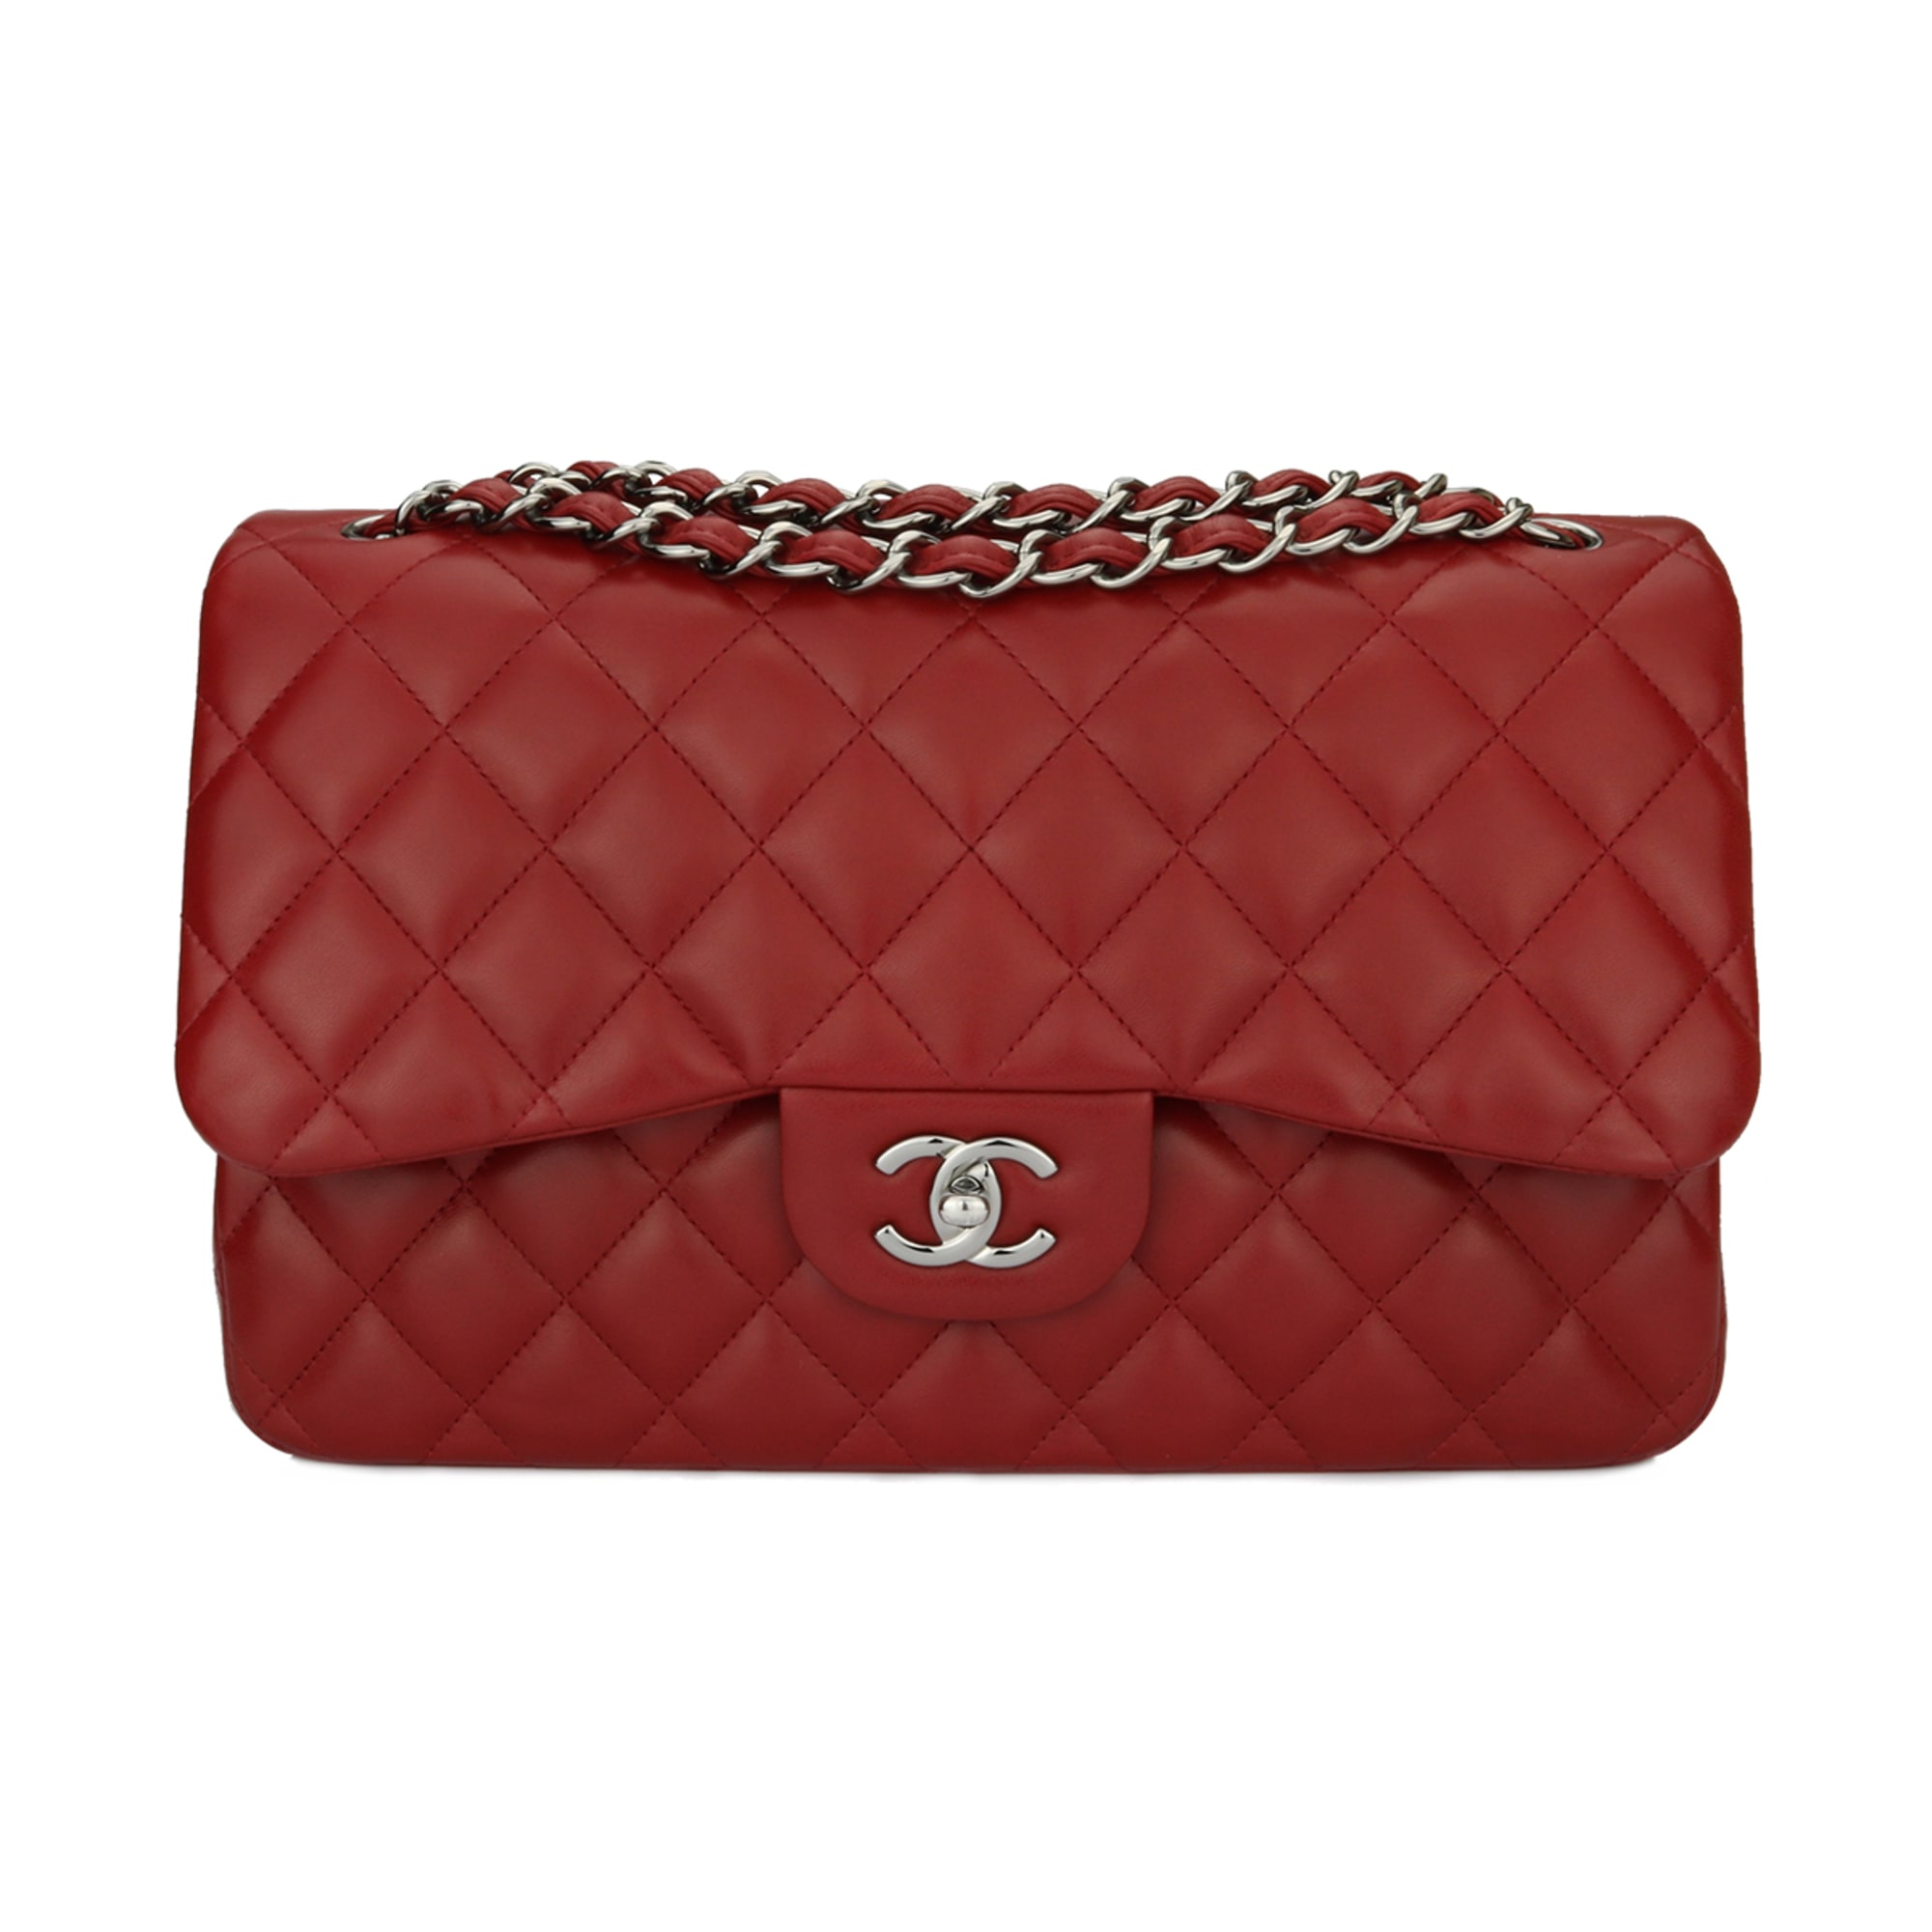 565413140d60 Sac à main en cuir CHANEL timeless rouge - 7441486